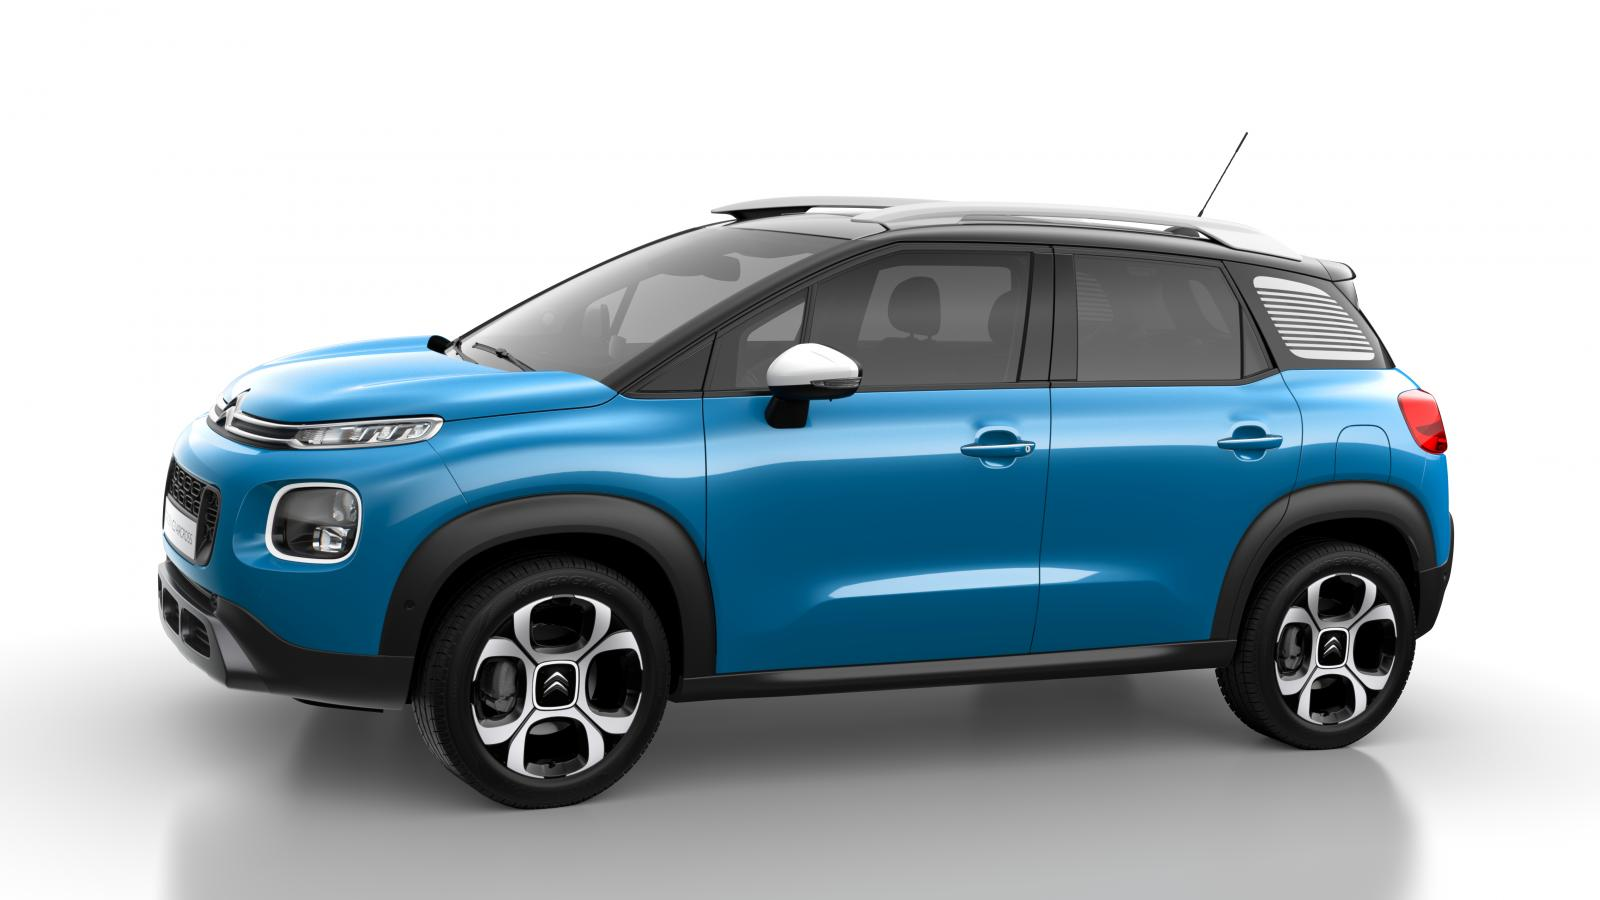 SUV Compact C3 Aircross Breathing Blue